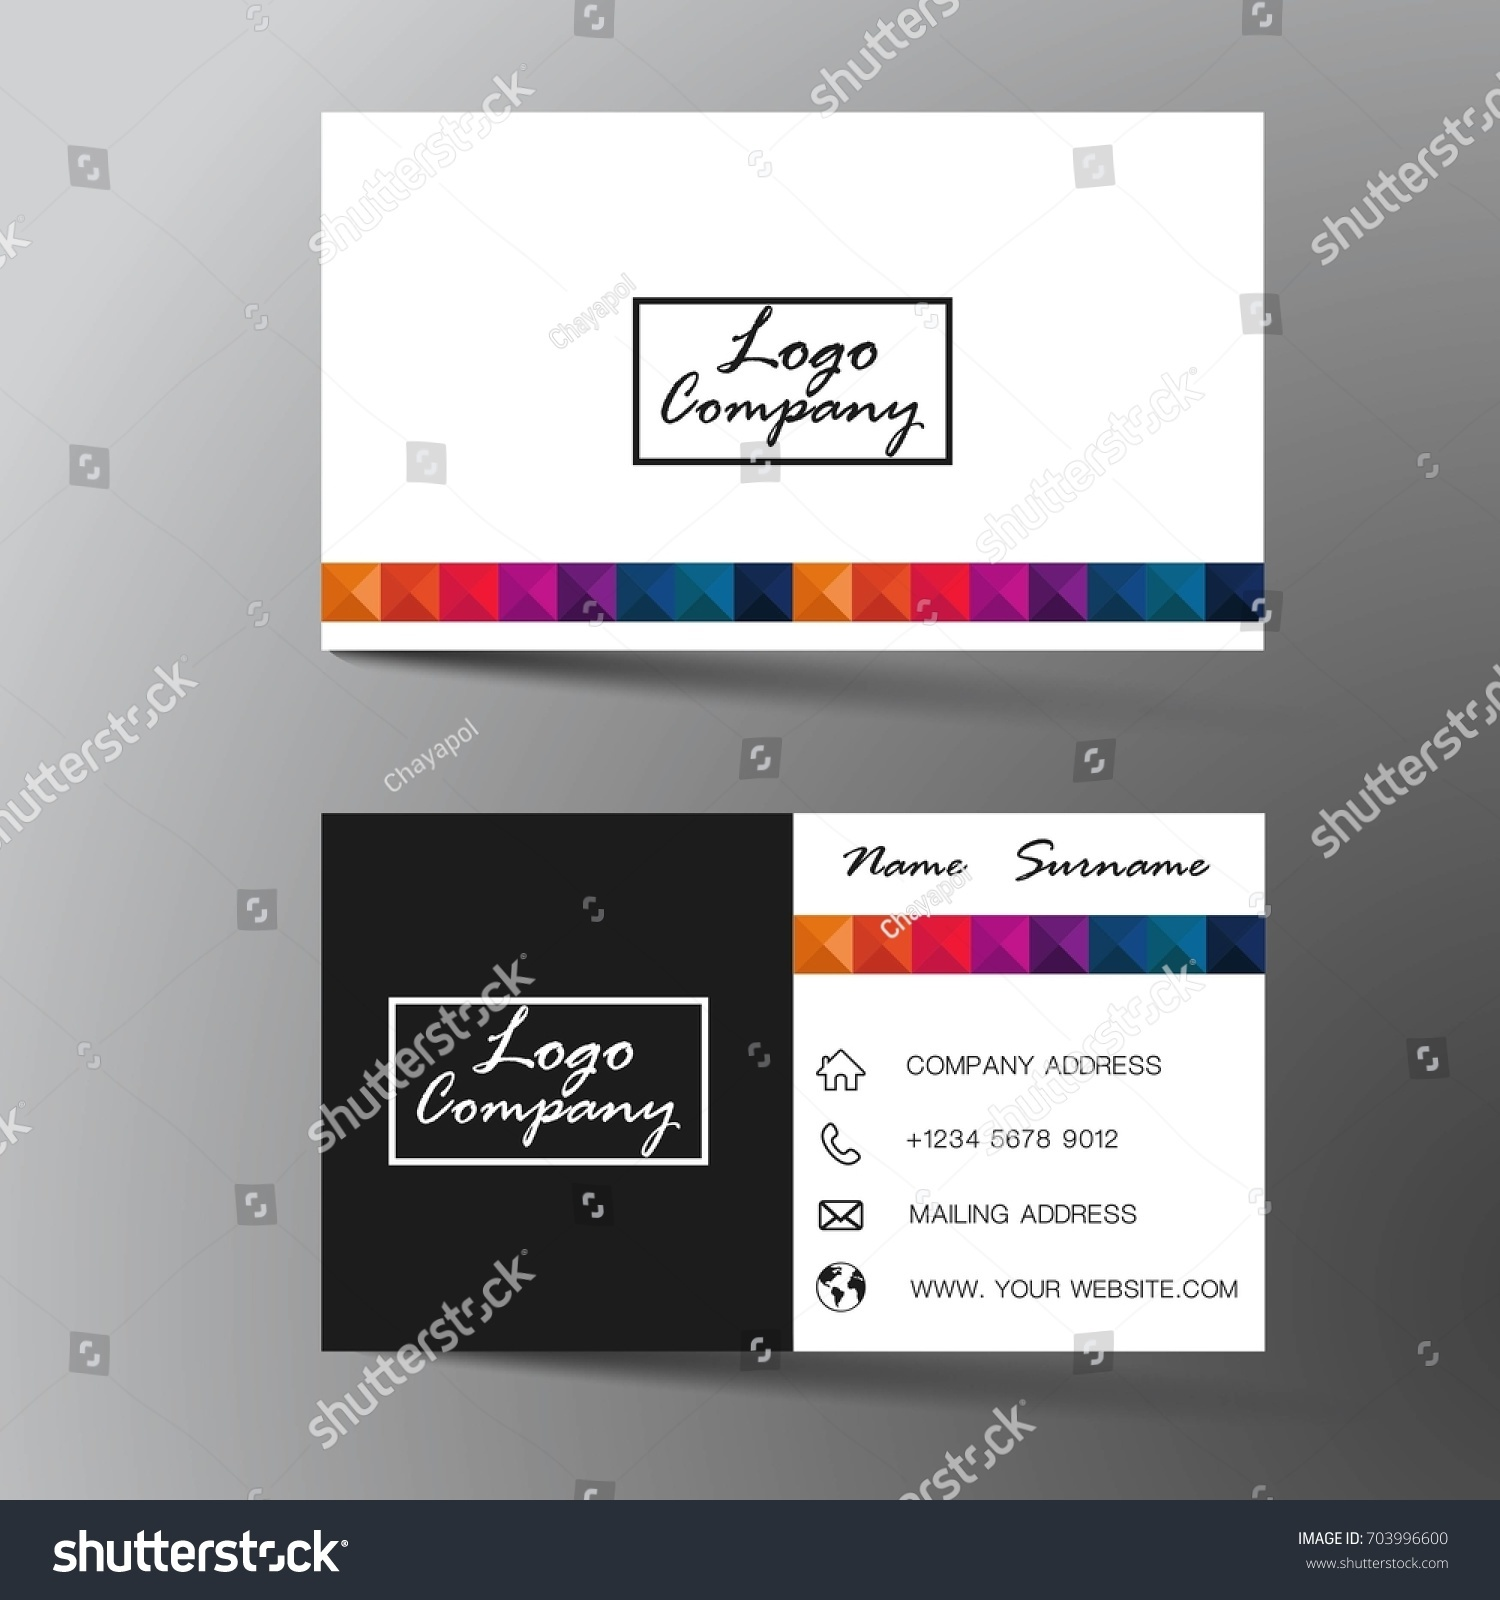 Modern Business Card Design Inspiration Abstractflat Stock Vector